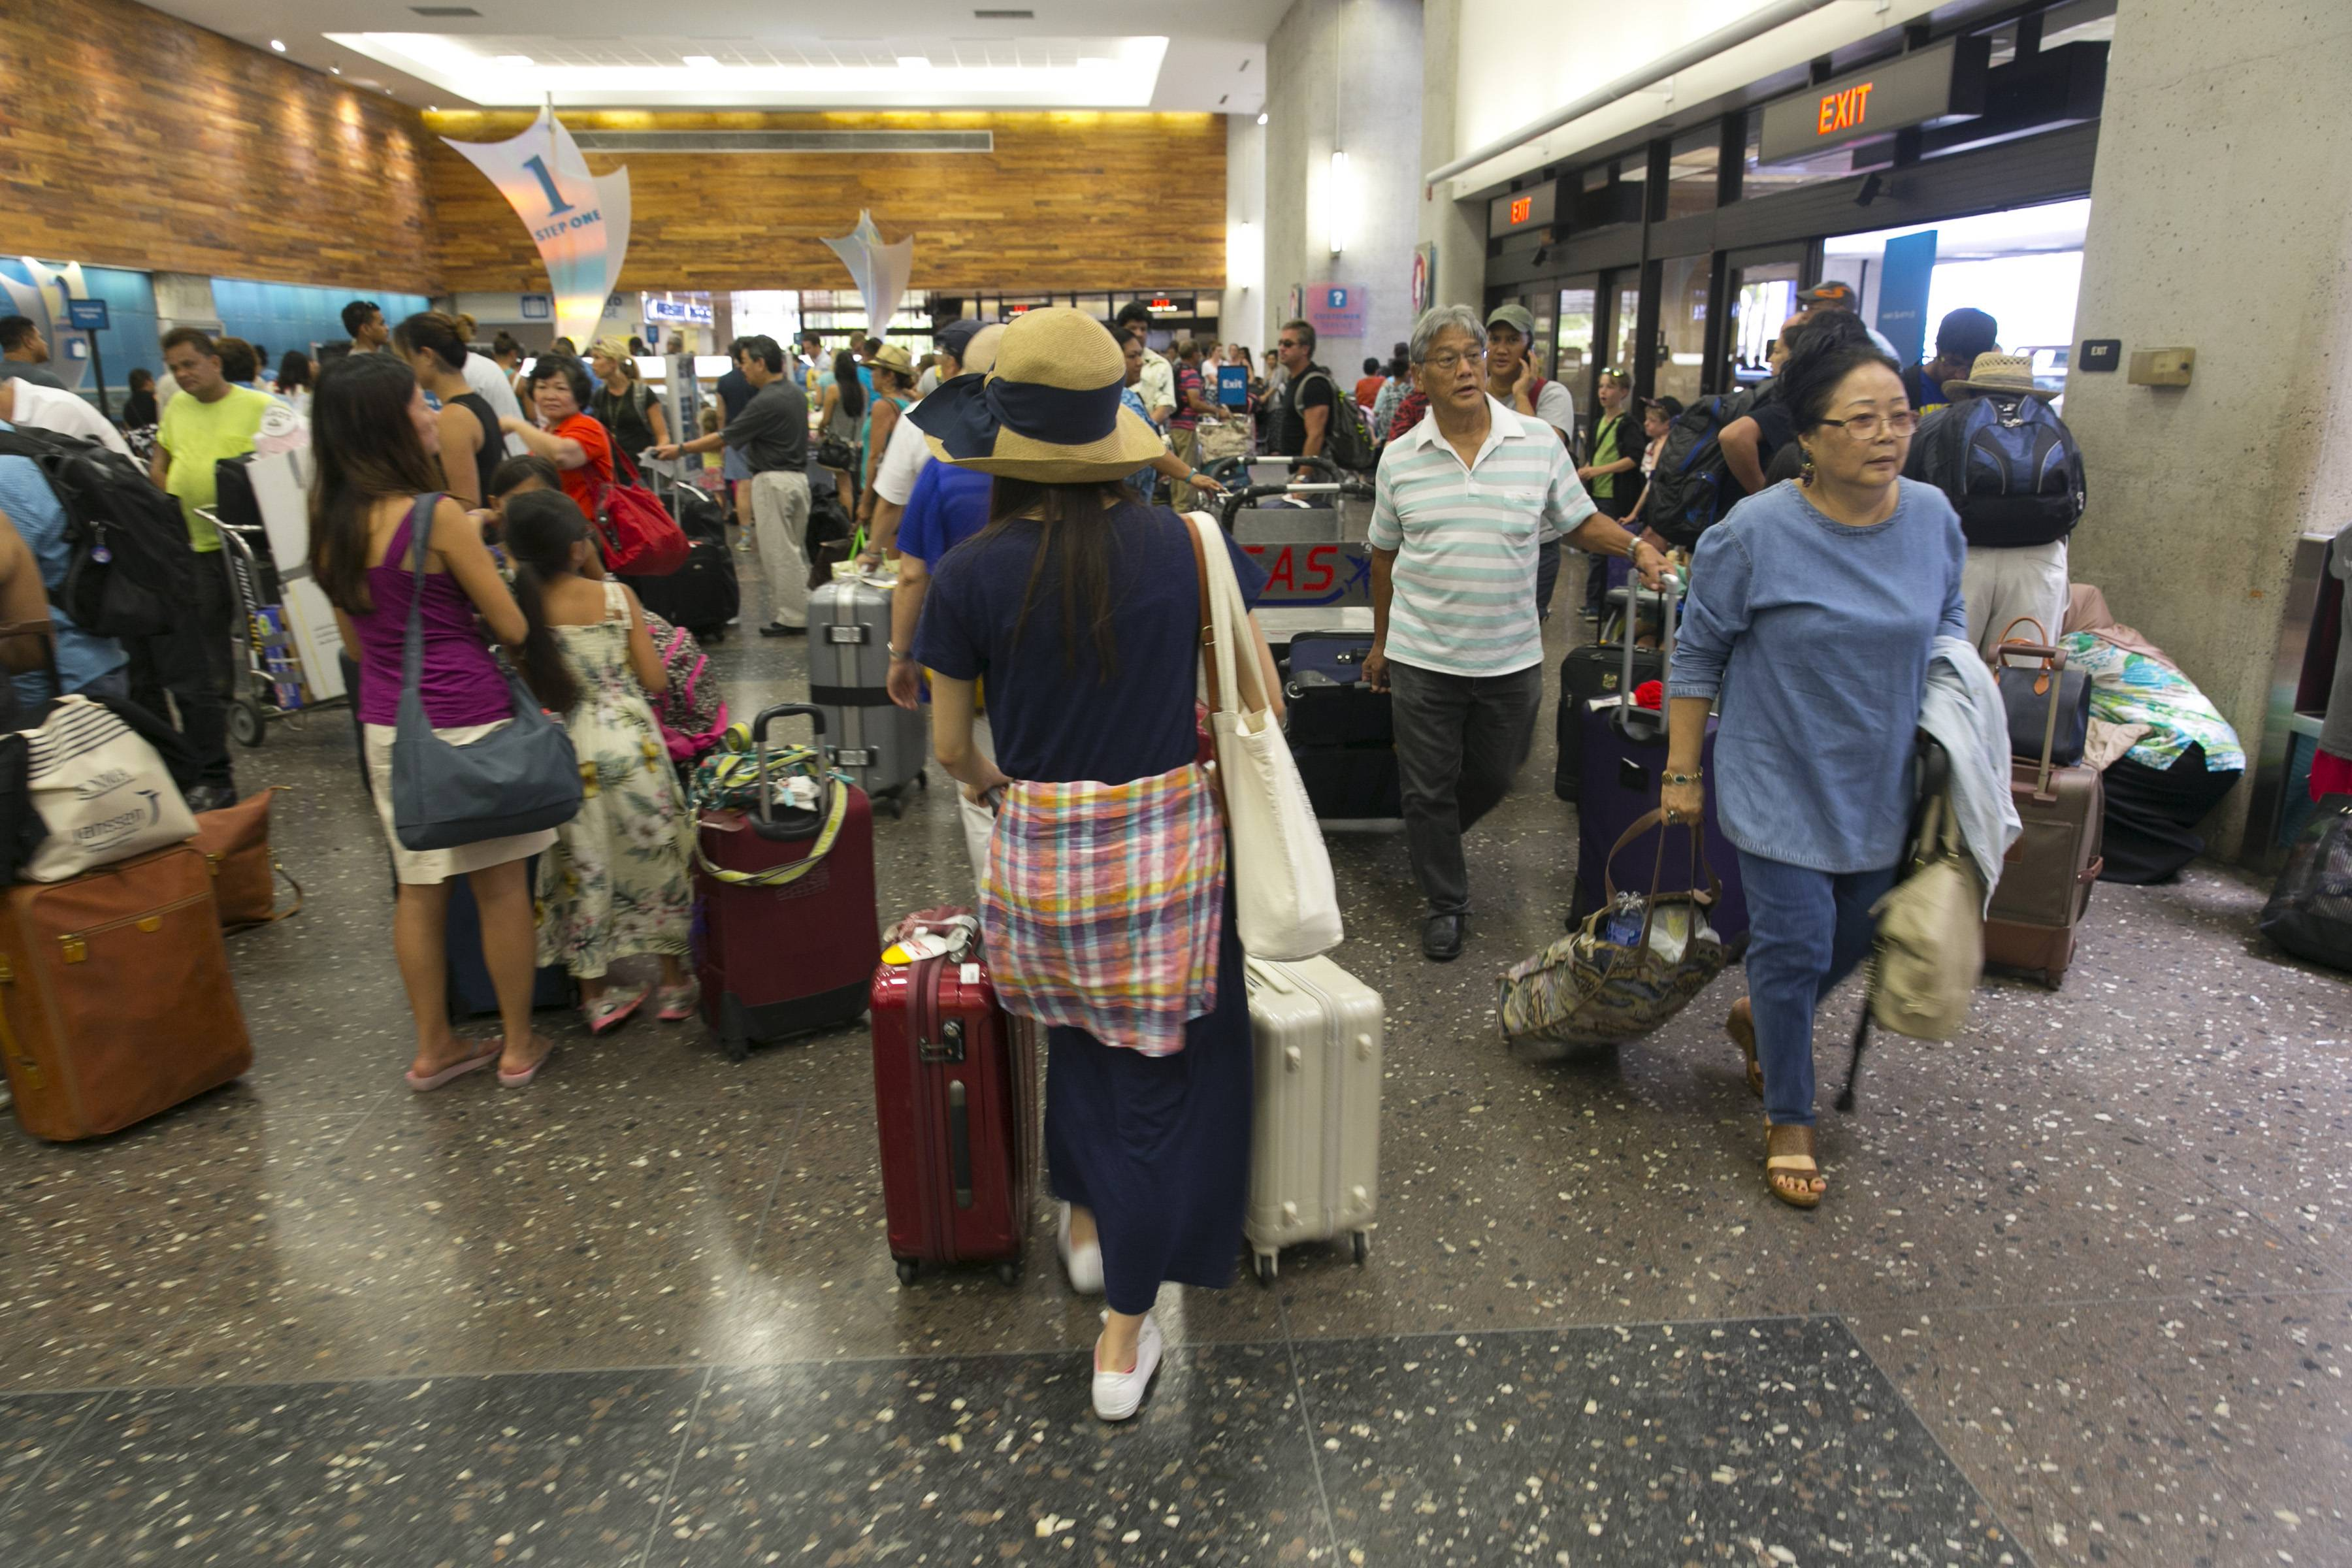 Crowds line up inside the departures terminal at the Honolulu International Airport in Honolulu on Thursday, Aug. 7, 2014. Hawaiian Airlines announced Thursday they are waiving change fees for passengers trying to leave before the storms hit the islands.